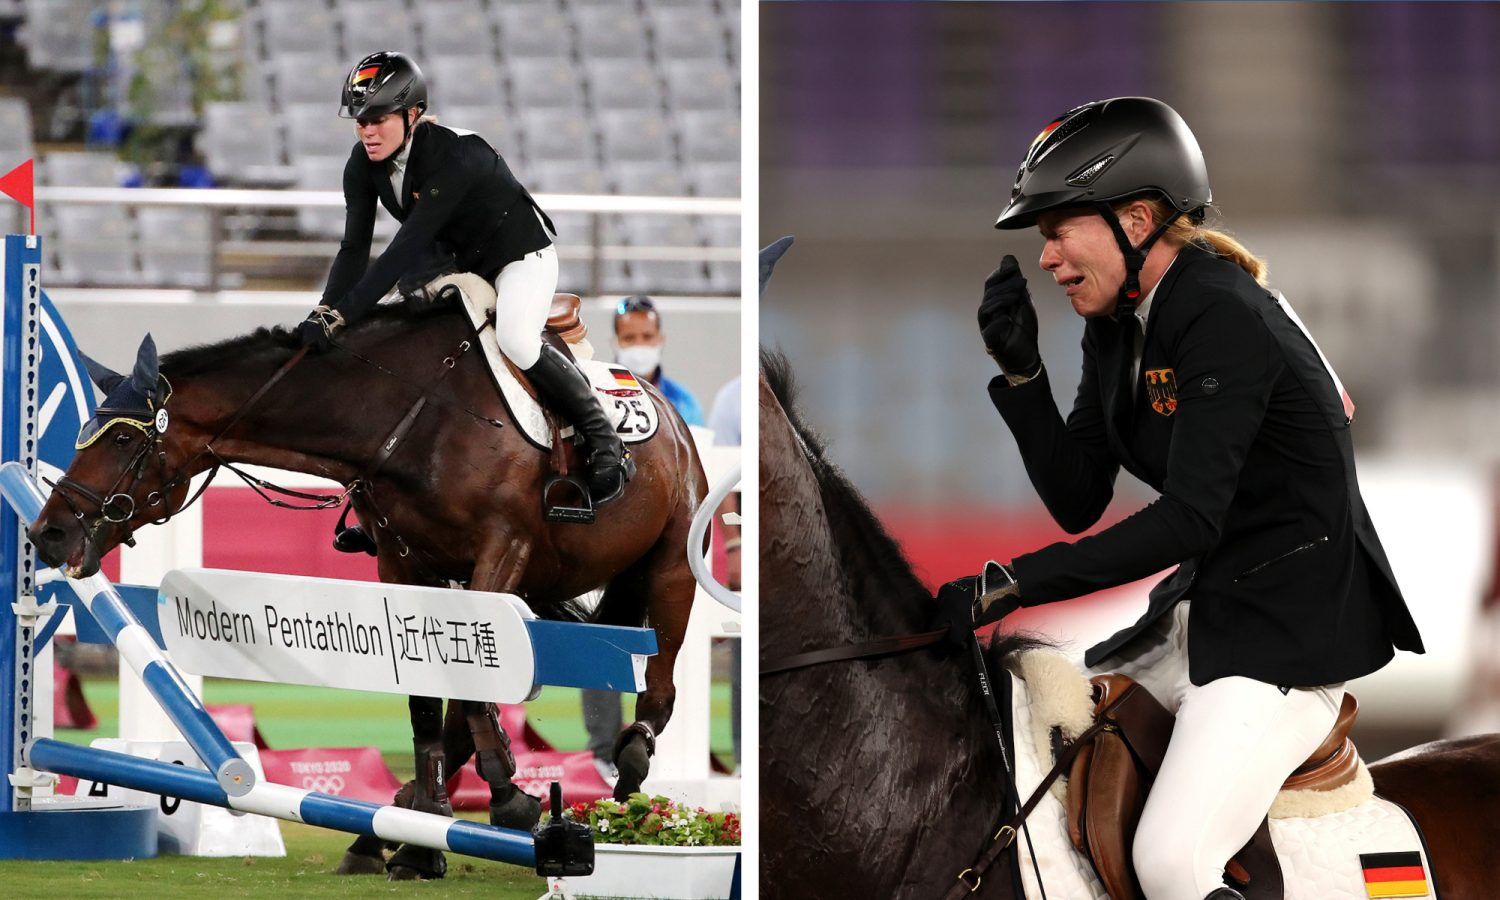 gold medal favourite rides around in tears after horse refuses to cooperate